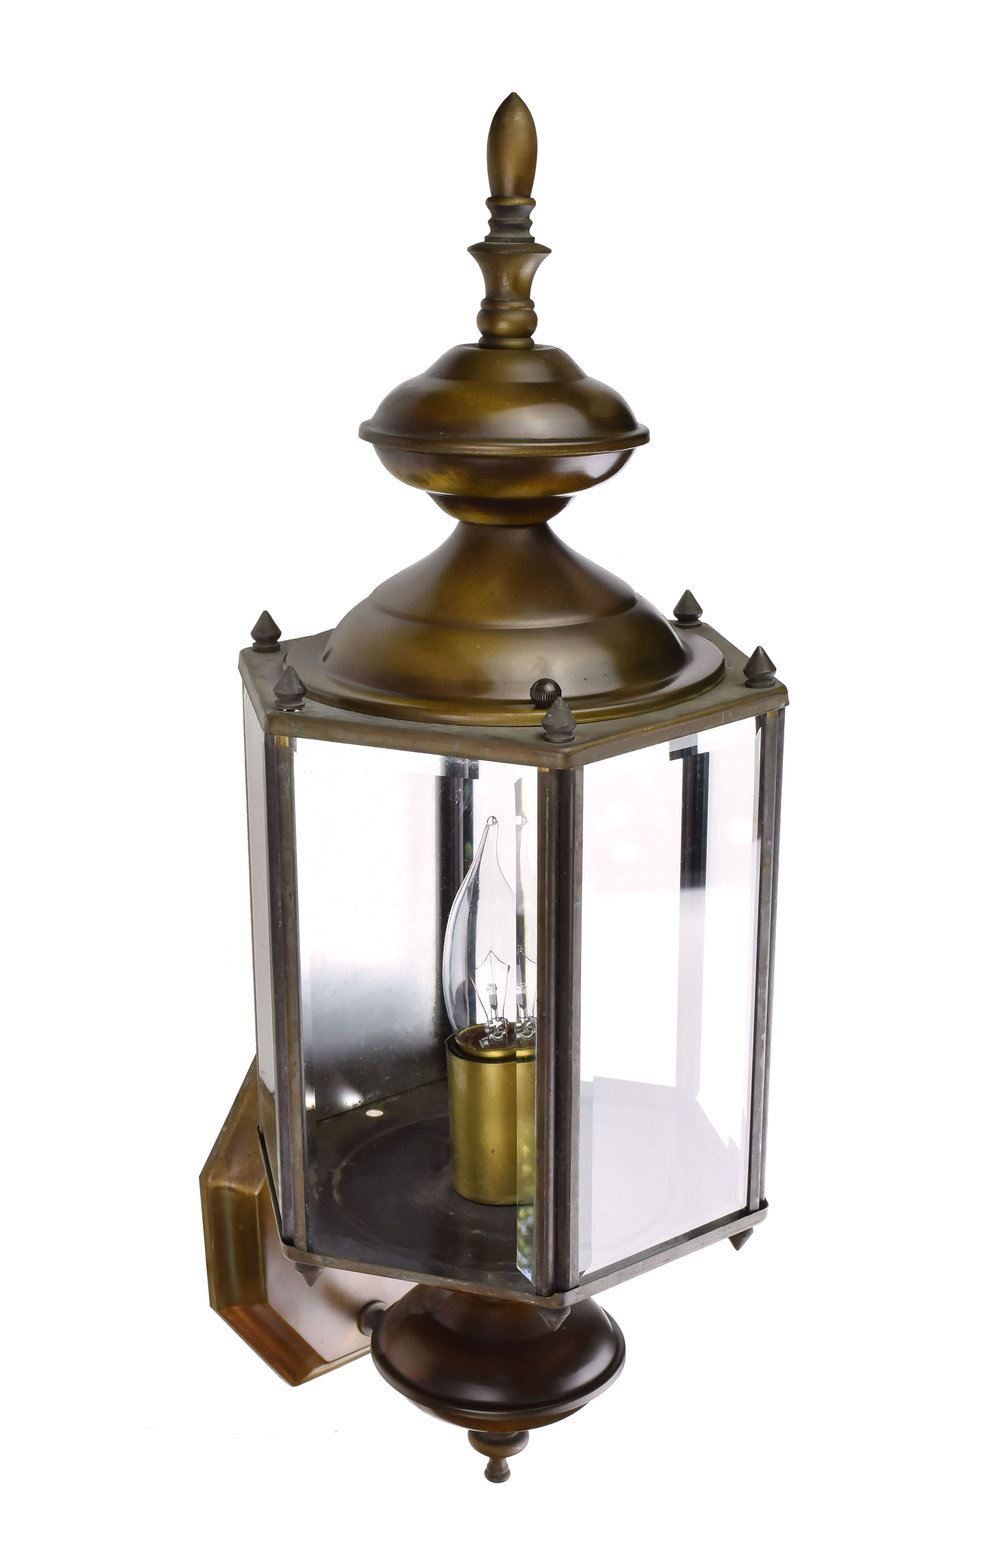 46989-brass-exterior-lantern-sconce-angle-view.jpg